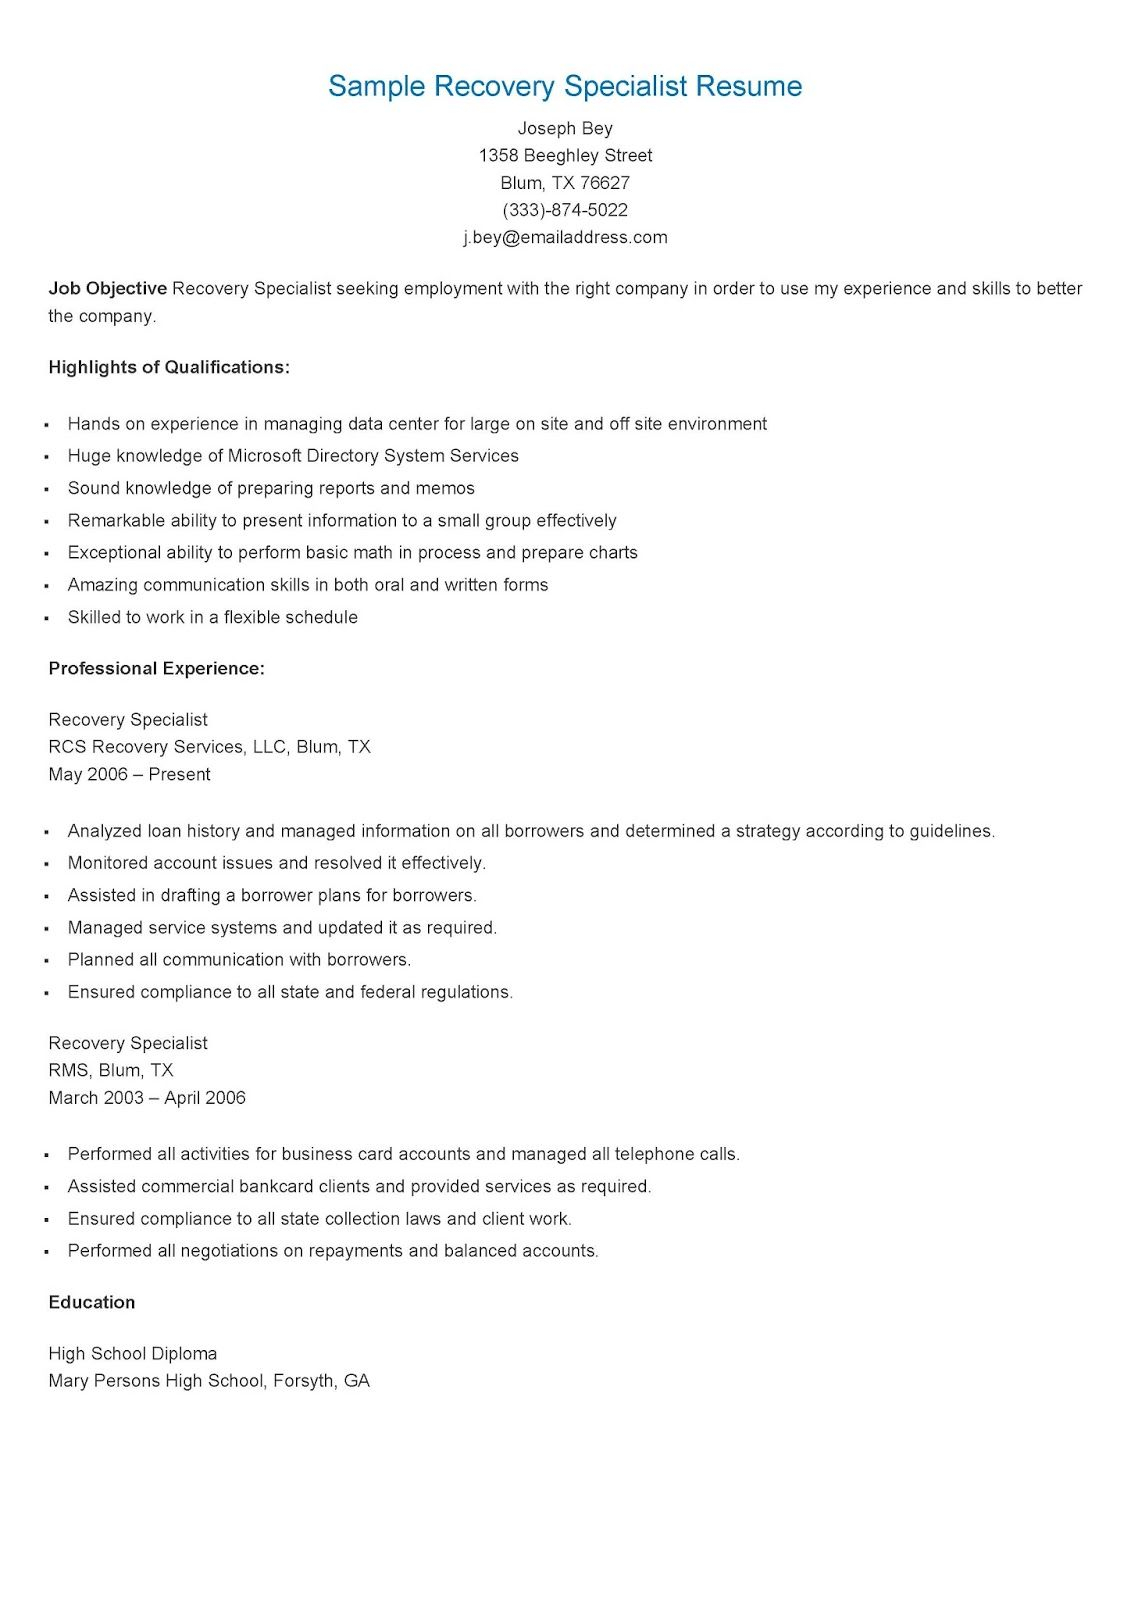 Sample Recovery Specialist Resume Resume Specialist Resume Examples